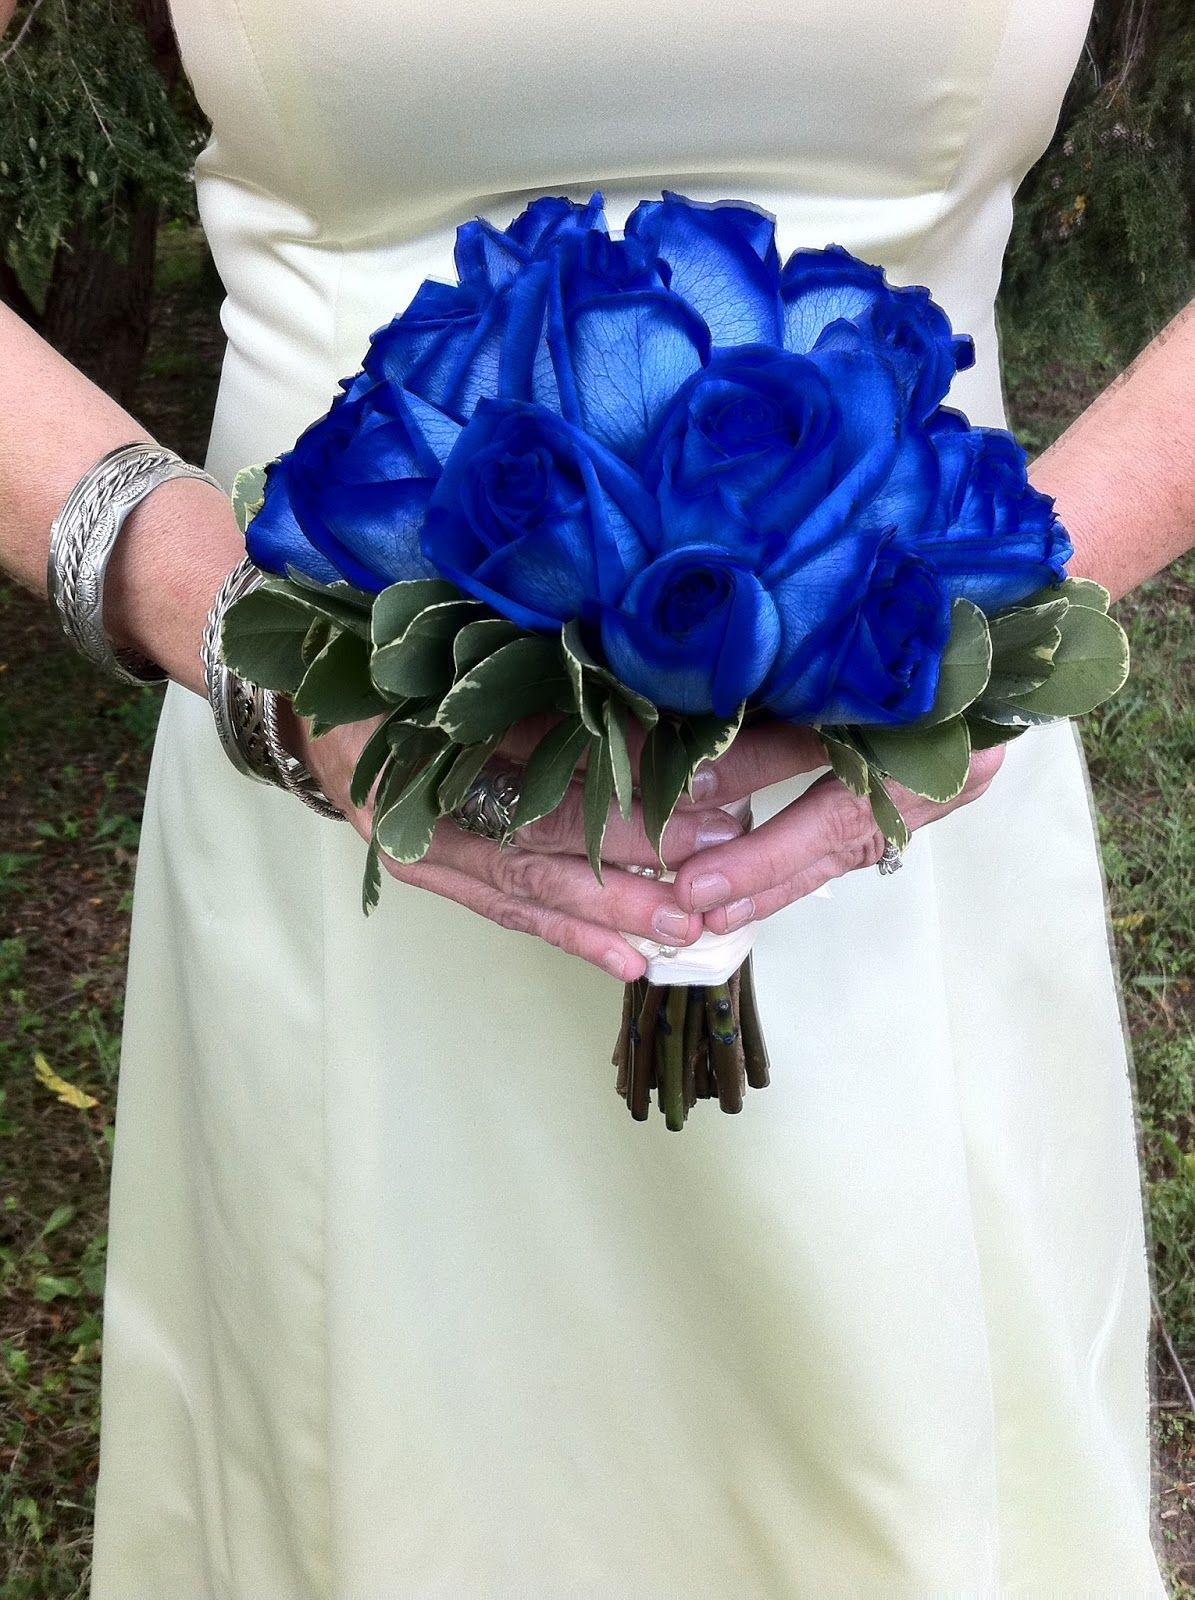 Stunning bridal bouquet arranged with blue roses green foliage stunning bridal bouquet arranged with blue roses green foliage izmirmasajfo